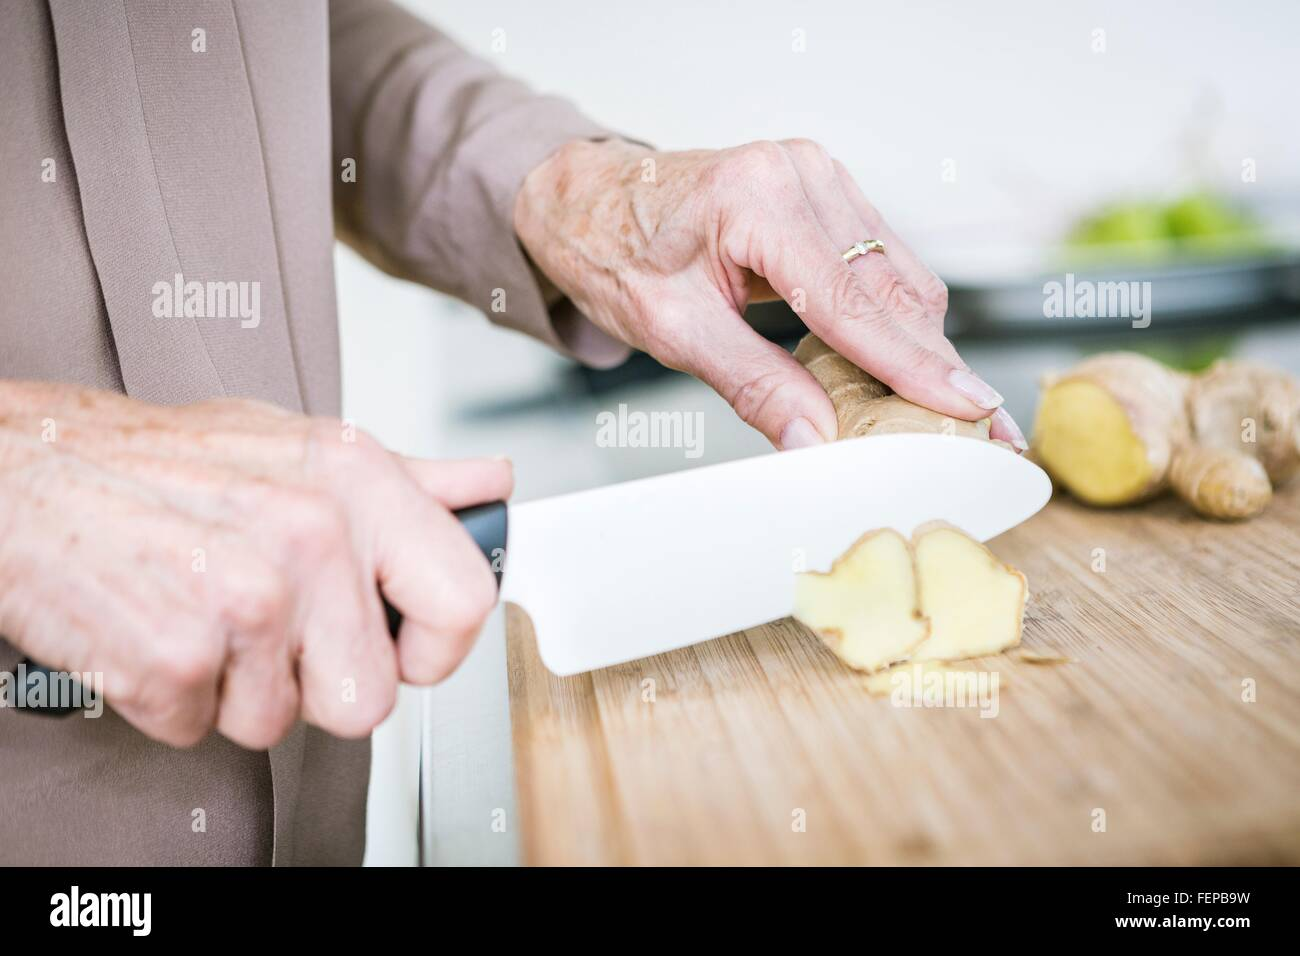 Close up of senior female hands chopping ginger - Stock Image